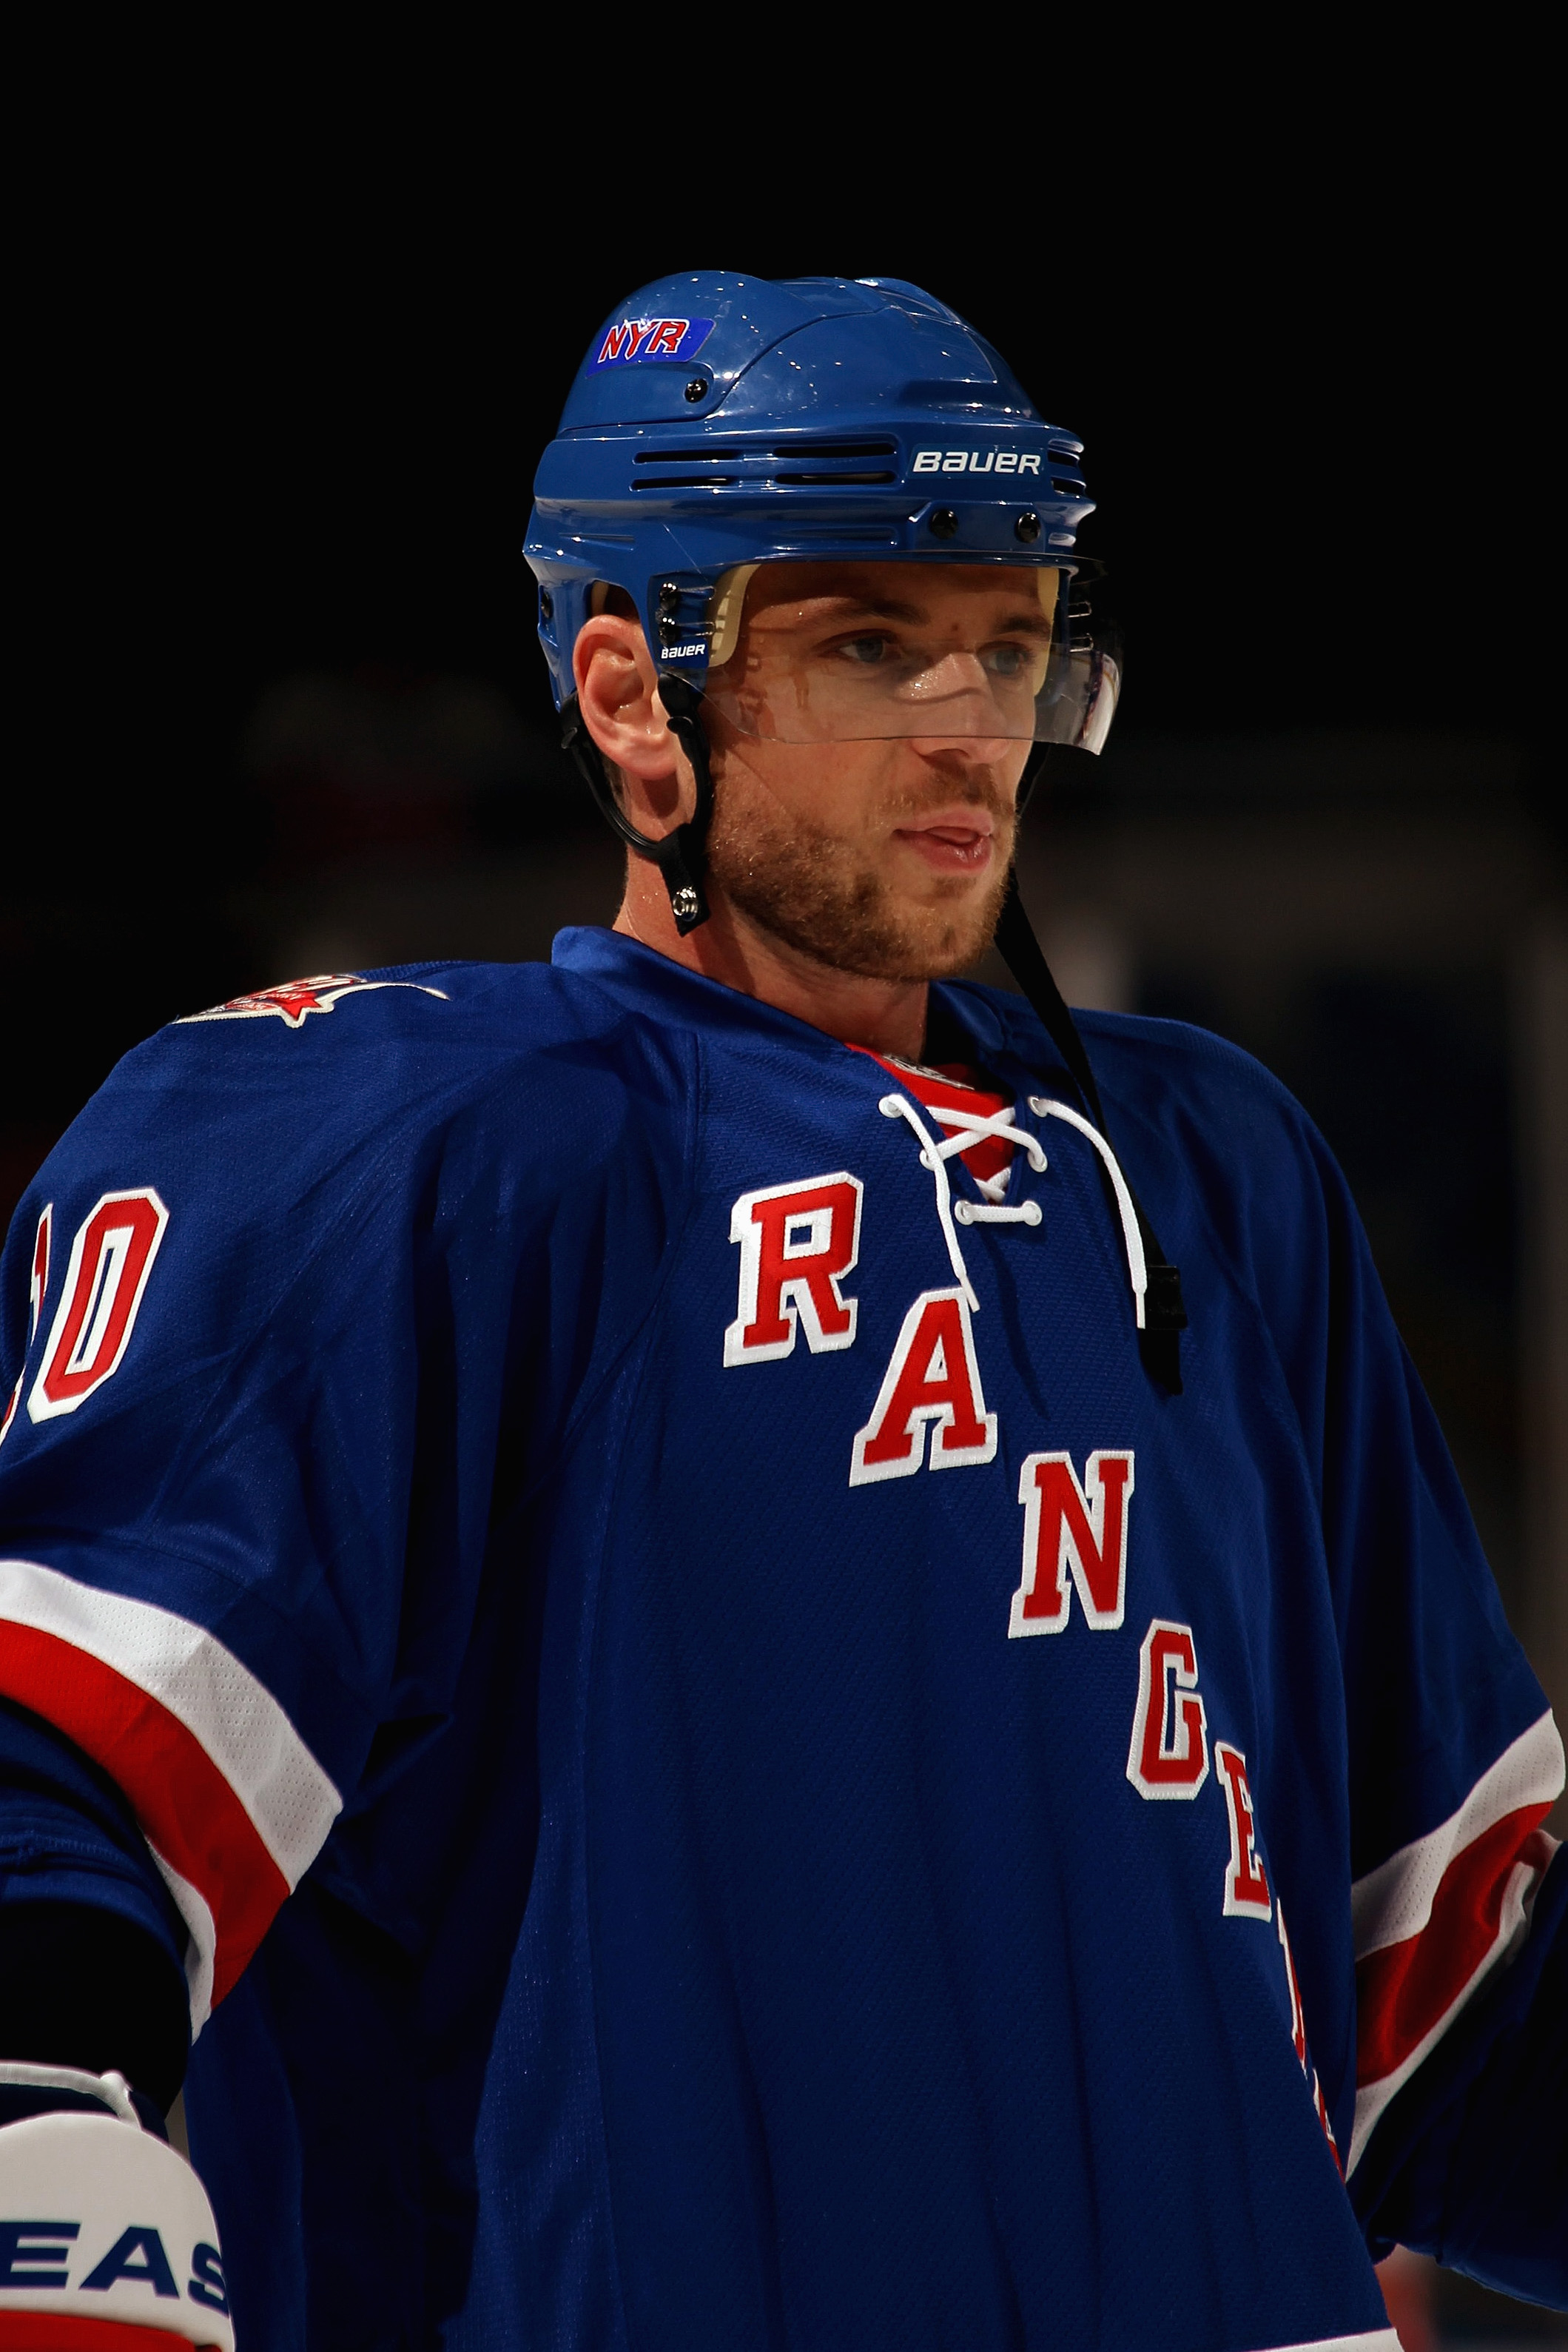 UNIONDALE, NY - OCTOBER 11:  Marian Gaborik #10 of the New York Rangers skates against the New York Islanders at the Nassau Coliseum on October 11, 2010 in Uniondale, New York.  The Islanders won 6-4.  (Photo by Bruce Bennett/Getty Images)